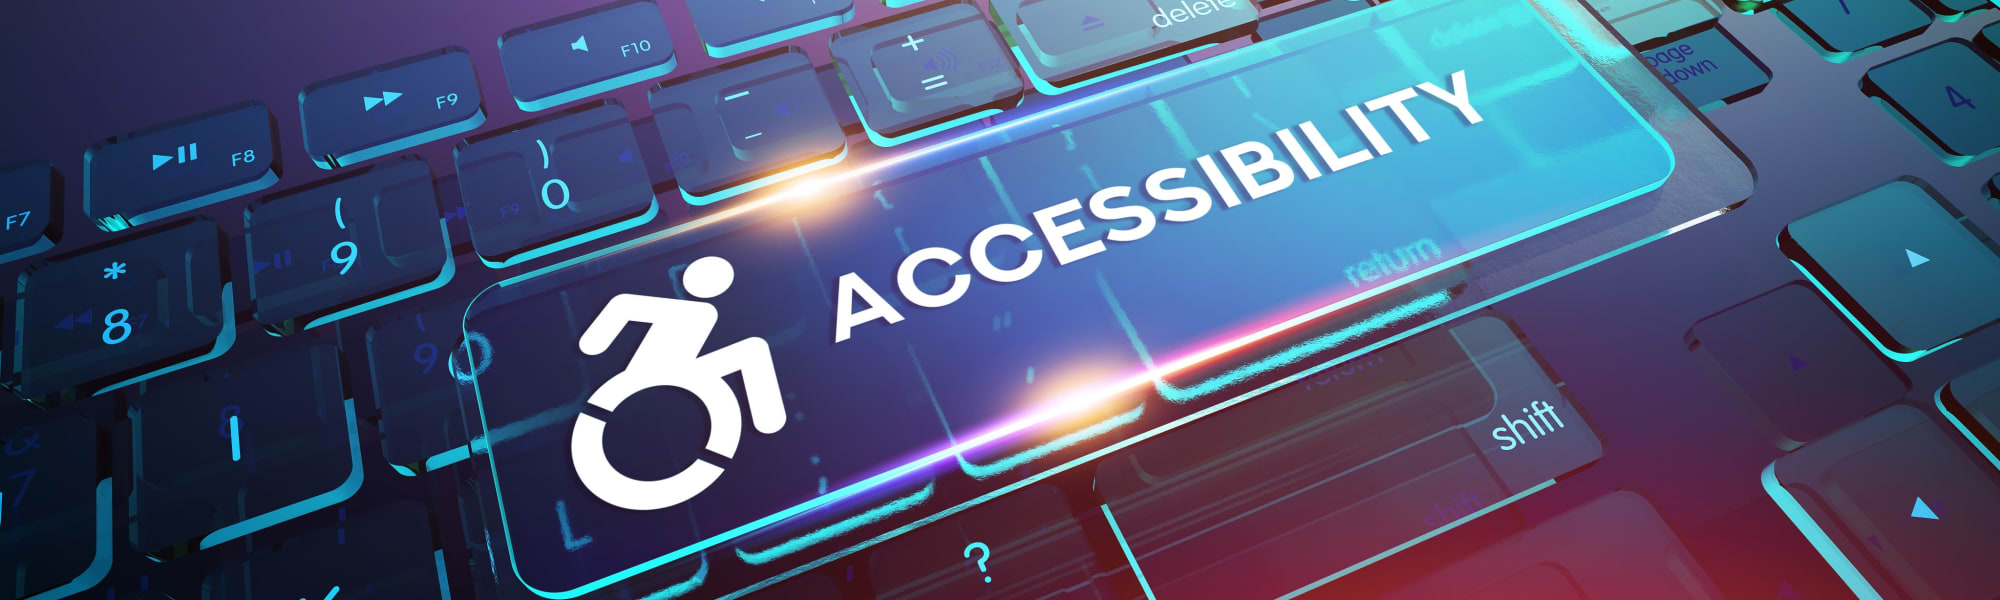 Accessibility policy for Olympus Waterford in Keller, Texas